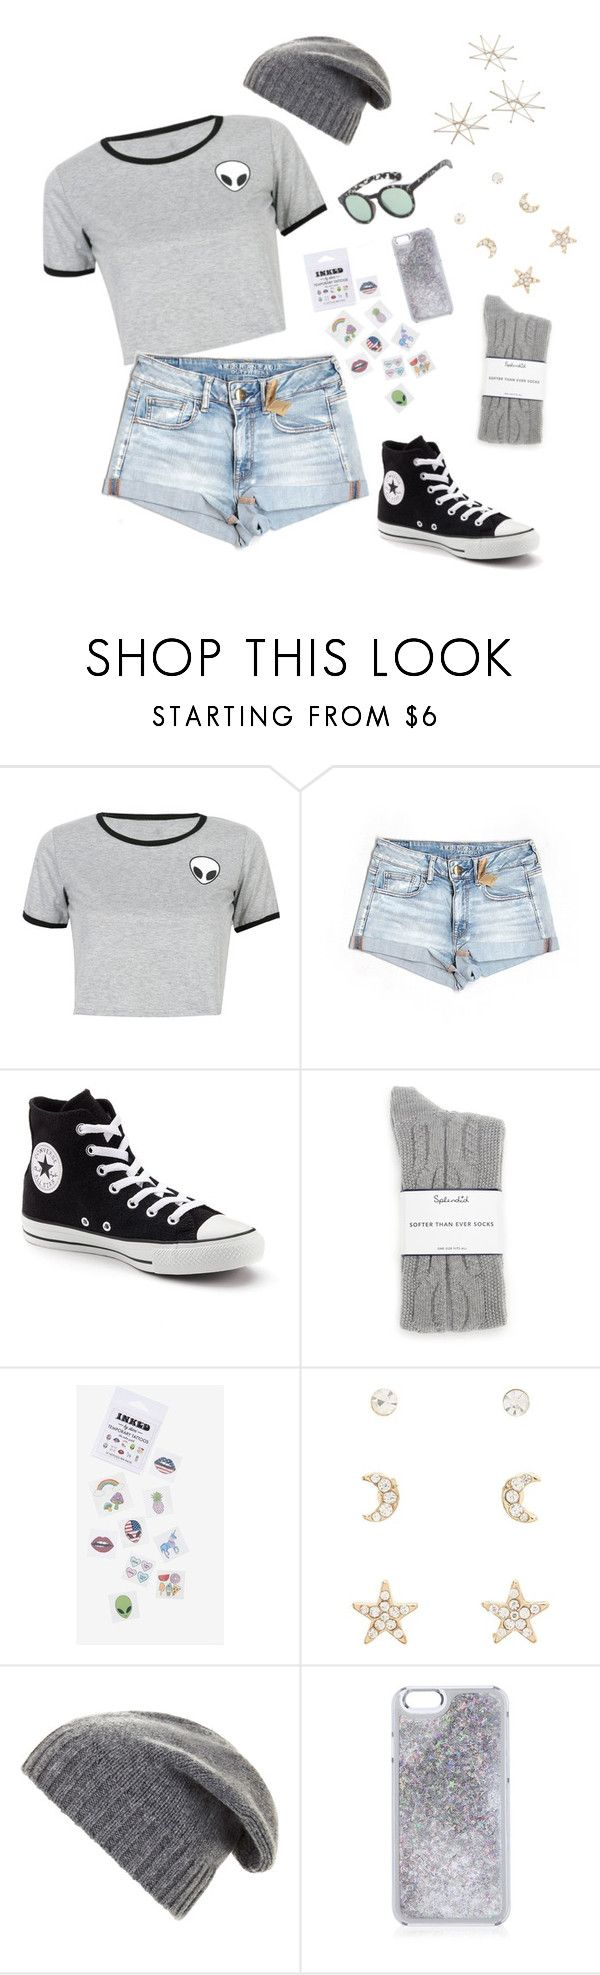 """""""alien @ the movie theater"""" by aathena ❤ liked on Polyvore featuring WithChic, American Eagle Outfitters, Converse, Splendid, Charlotte Russe, BCBGMAXAZRIA and Uttermost"""